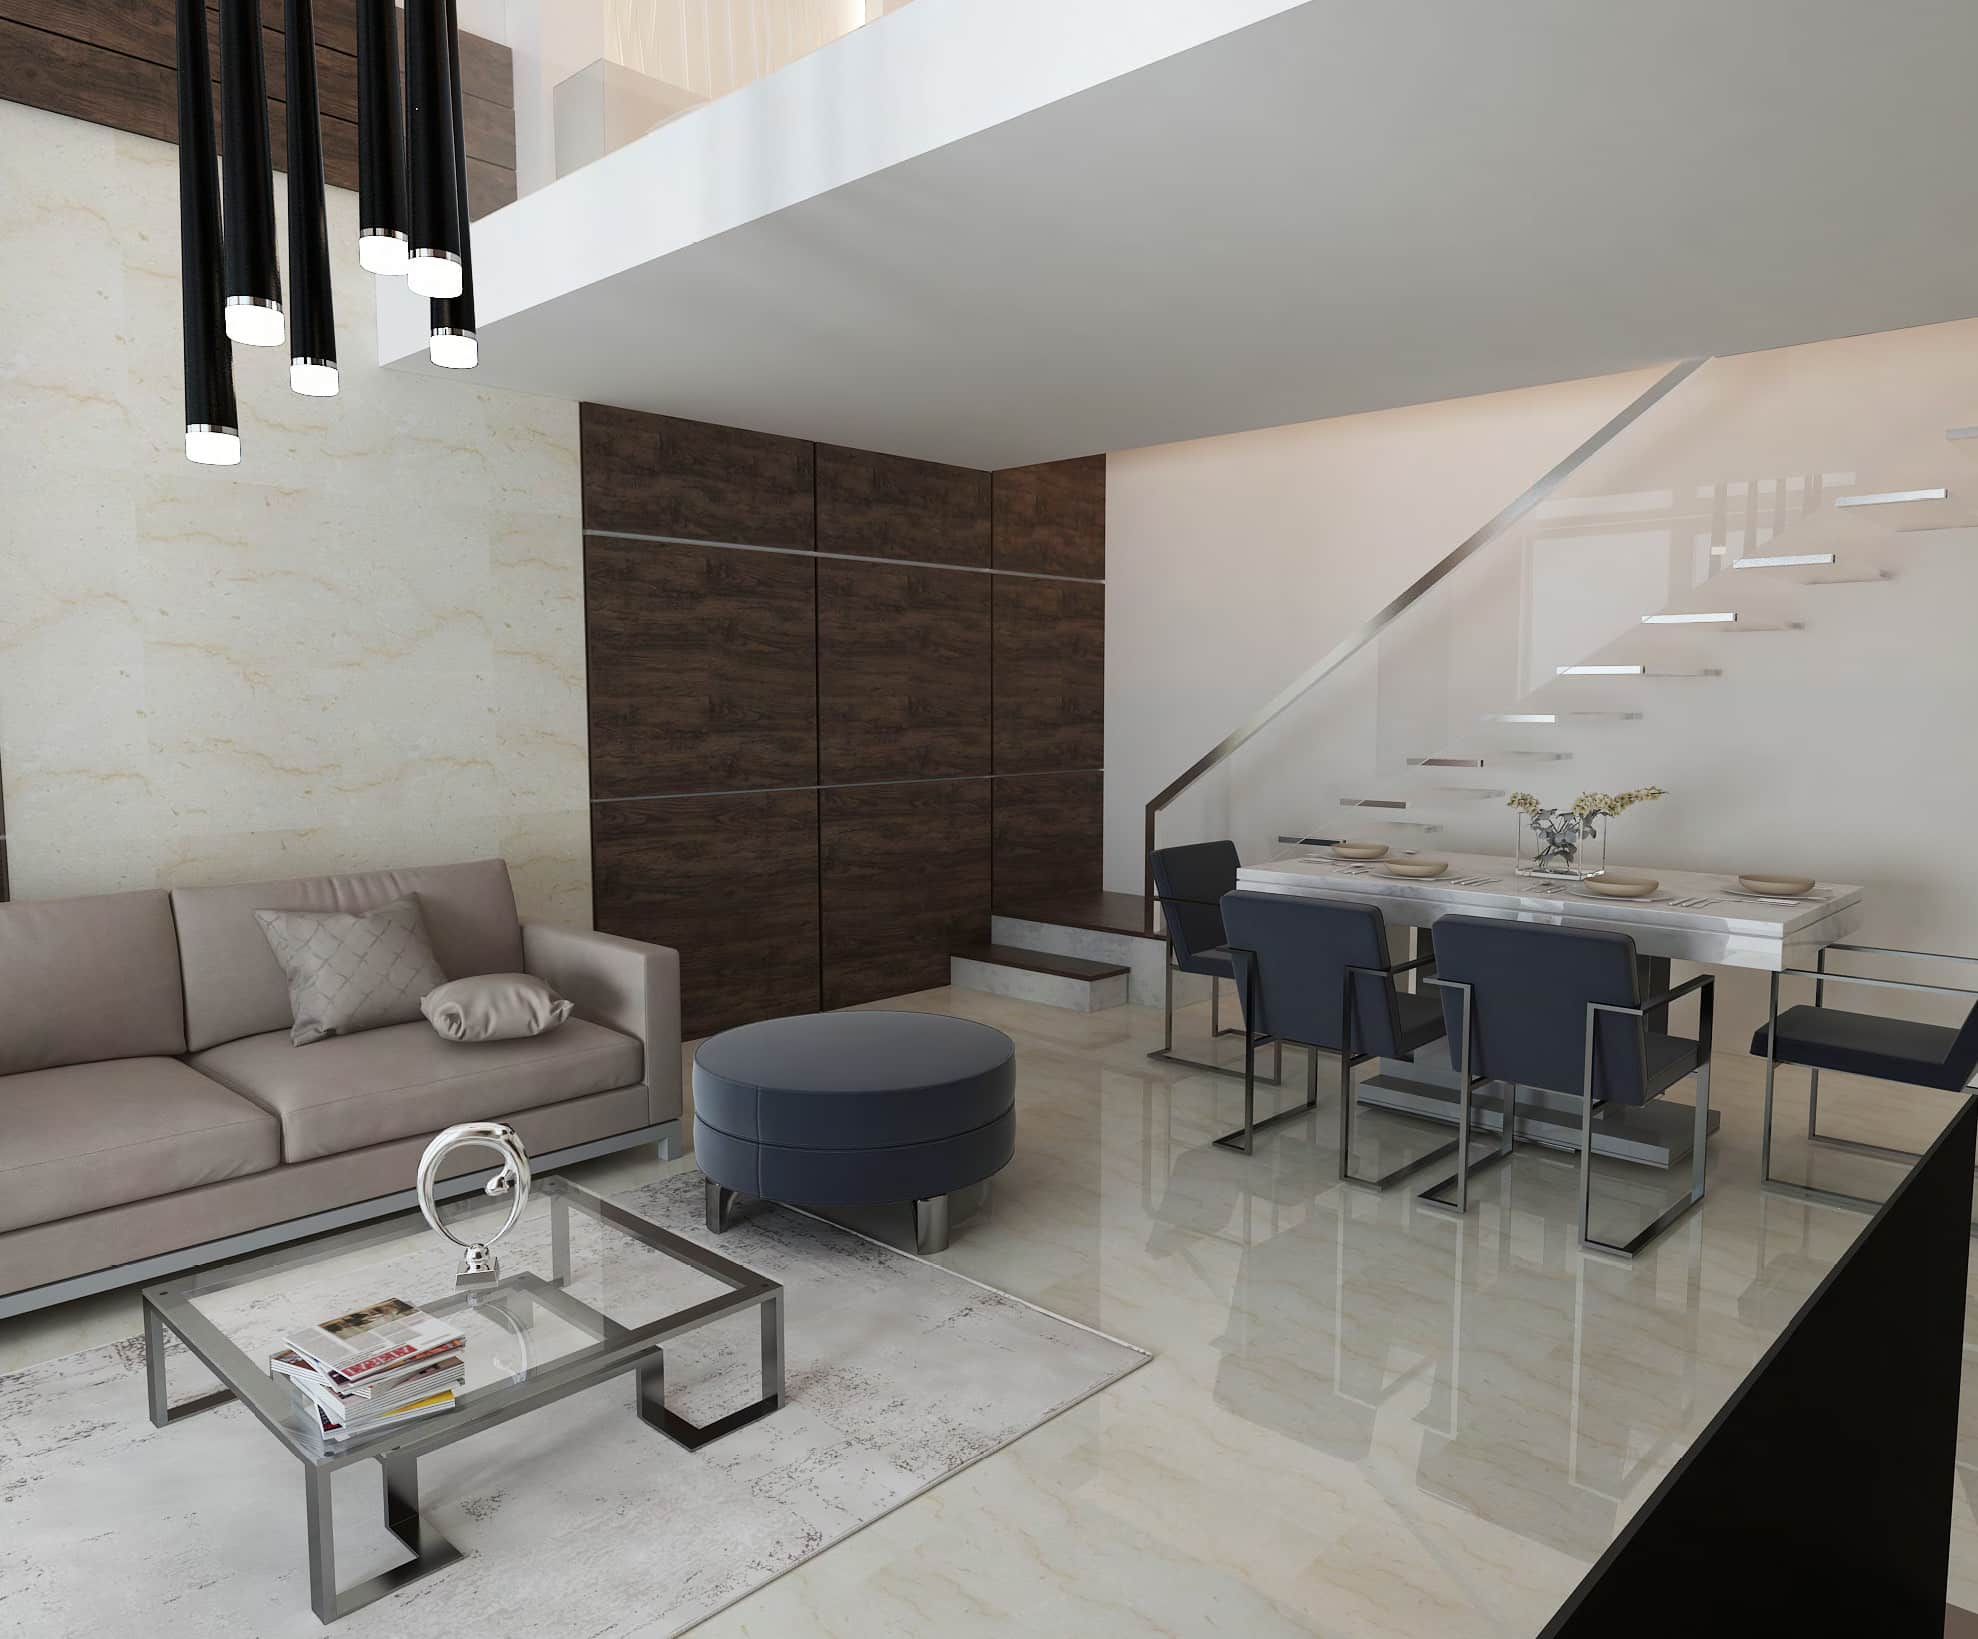 Rukan Lofts by Rukan in Dubailand, Dubai. Premium 1, 2 bedroom townhouses with bathrooms for Sale in Dubai. Payment Plan available._33